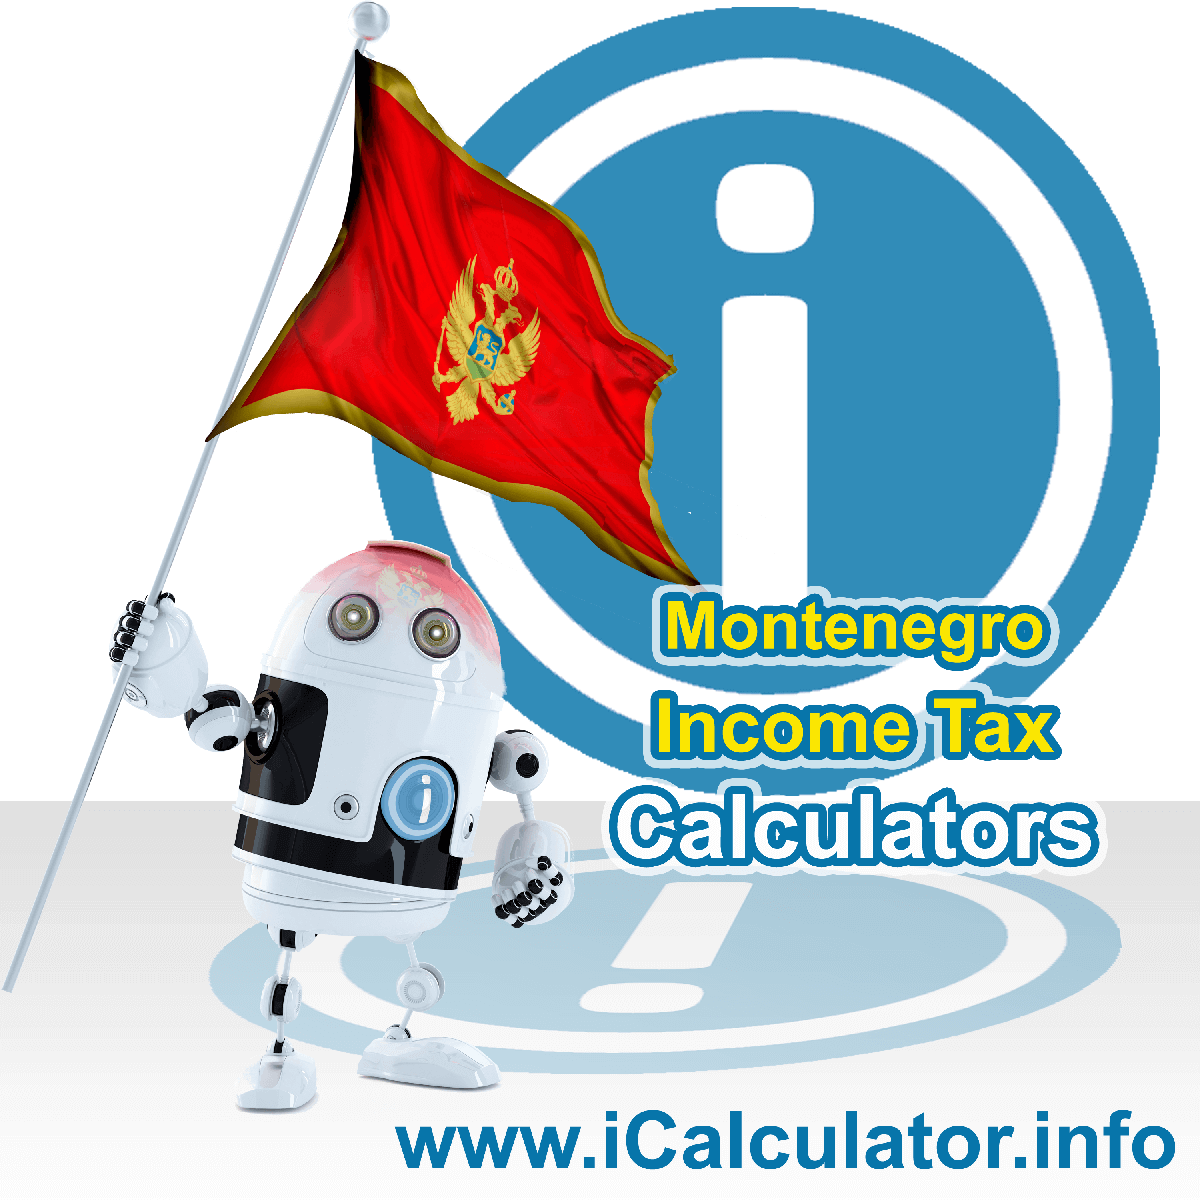 Montenegro Income Tax Calculator. This image shows a new employer in Montenegro calculating the annual payroll costs based on multiple payroll payments in one year in Montenegro using the Montenegro income tax calculator to understand their payroll costs in Montenegro in 2021